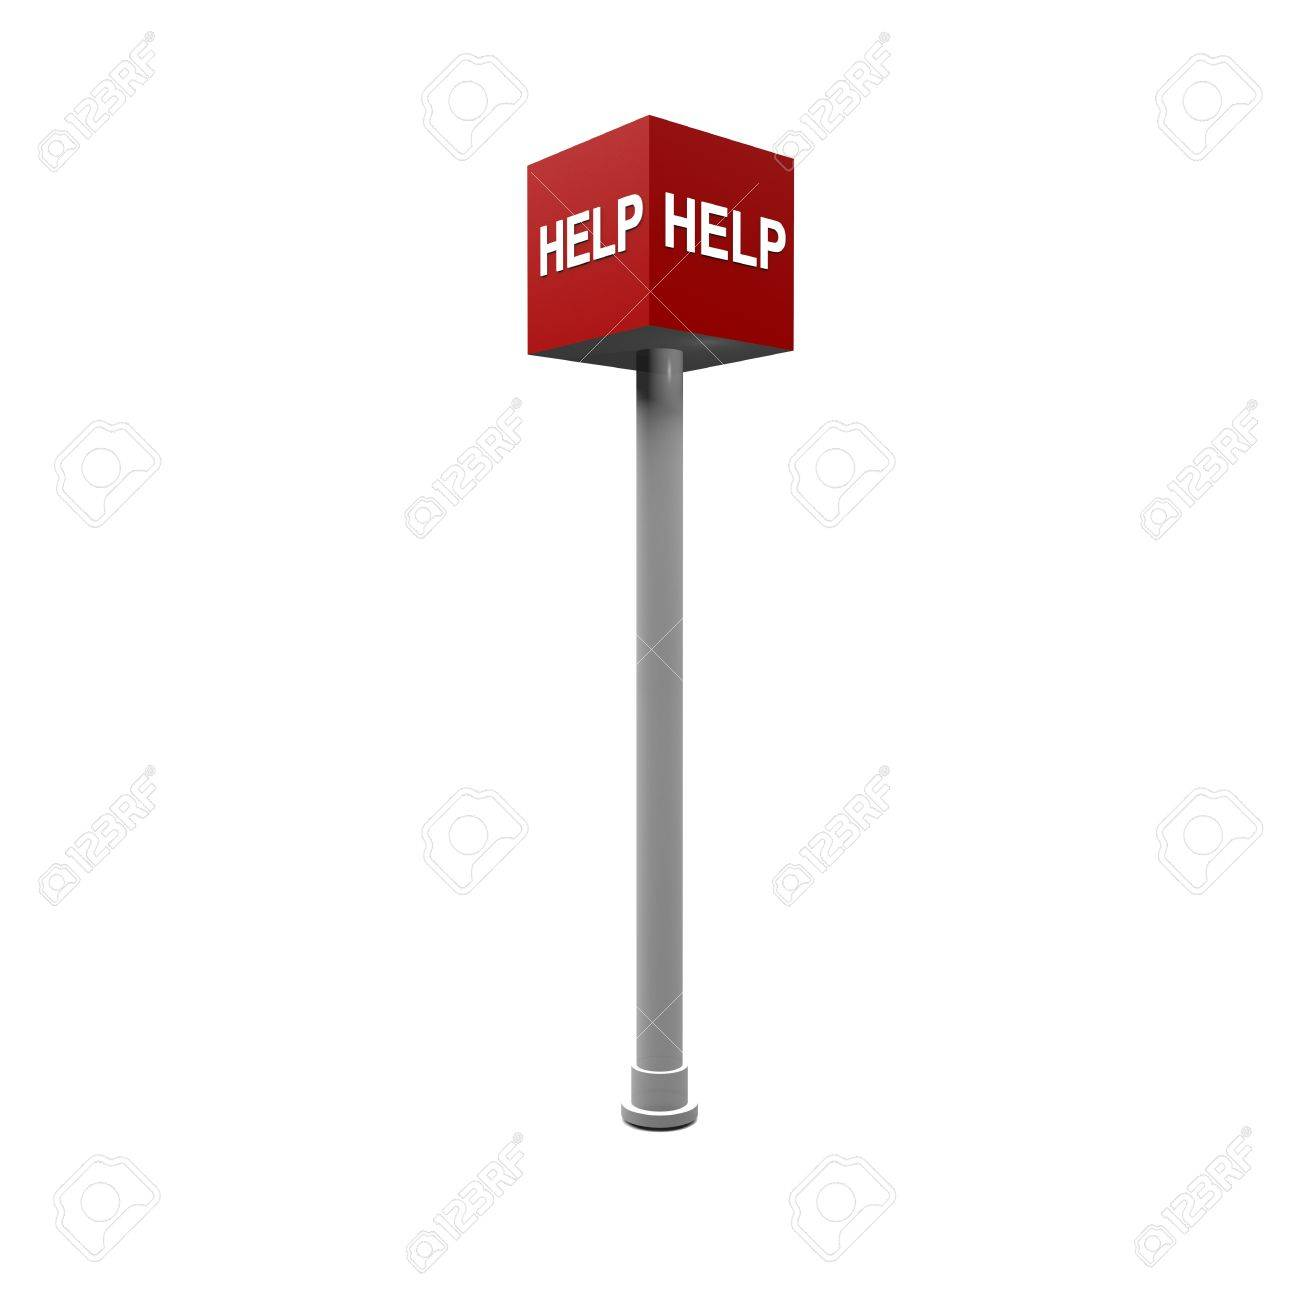 help sign Stock Photo - 19980274